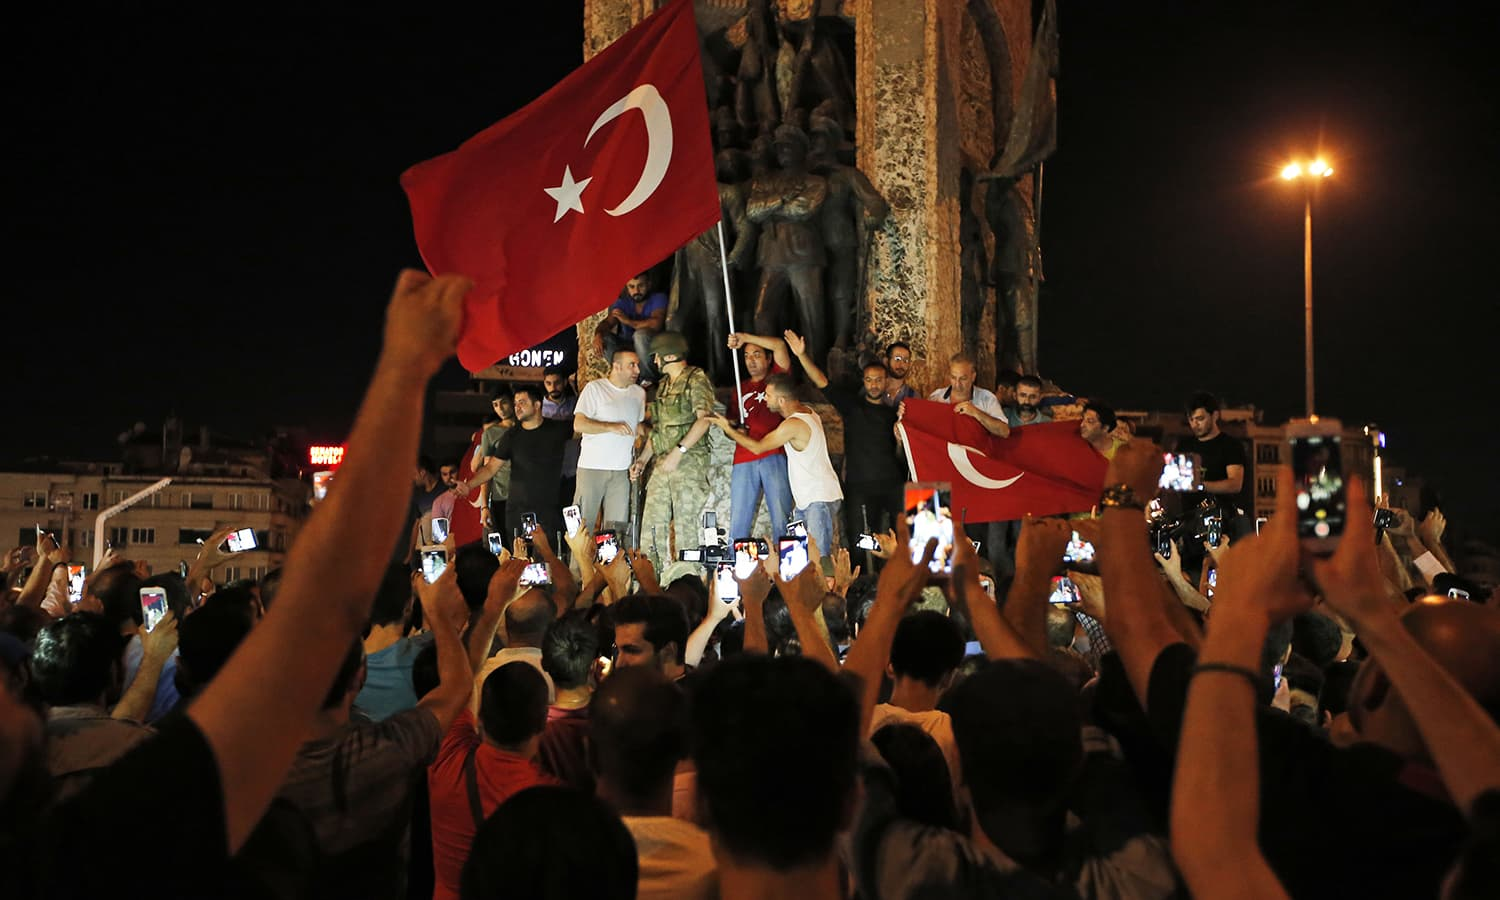 Supporters of Turkey's President Recep Tayyip Erdogan, gather, waving Turkish flags, in Istanbul's Taksim square, early Saturday, July 16. � AP